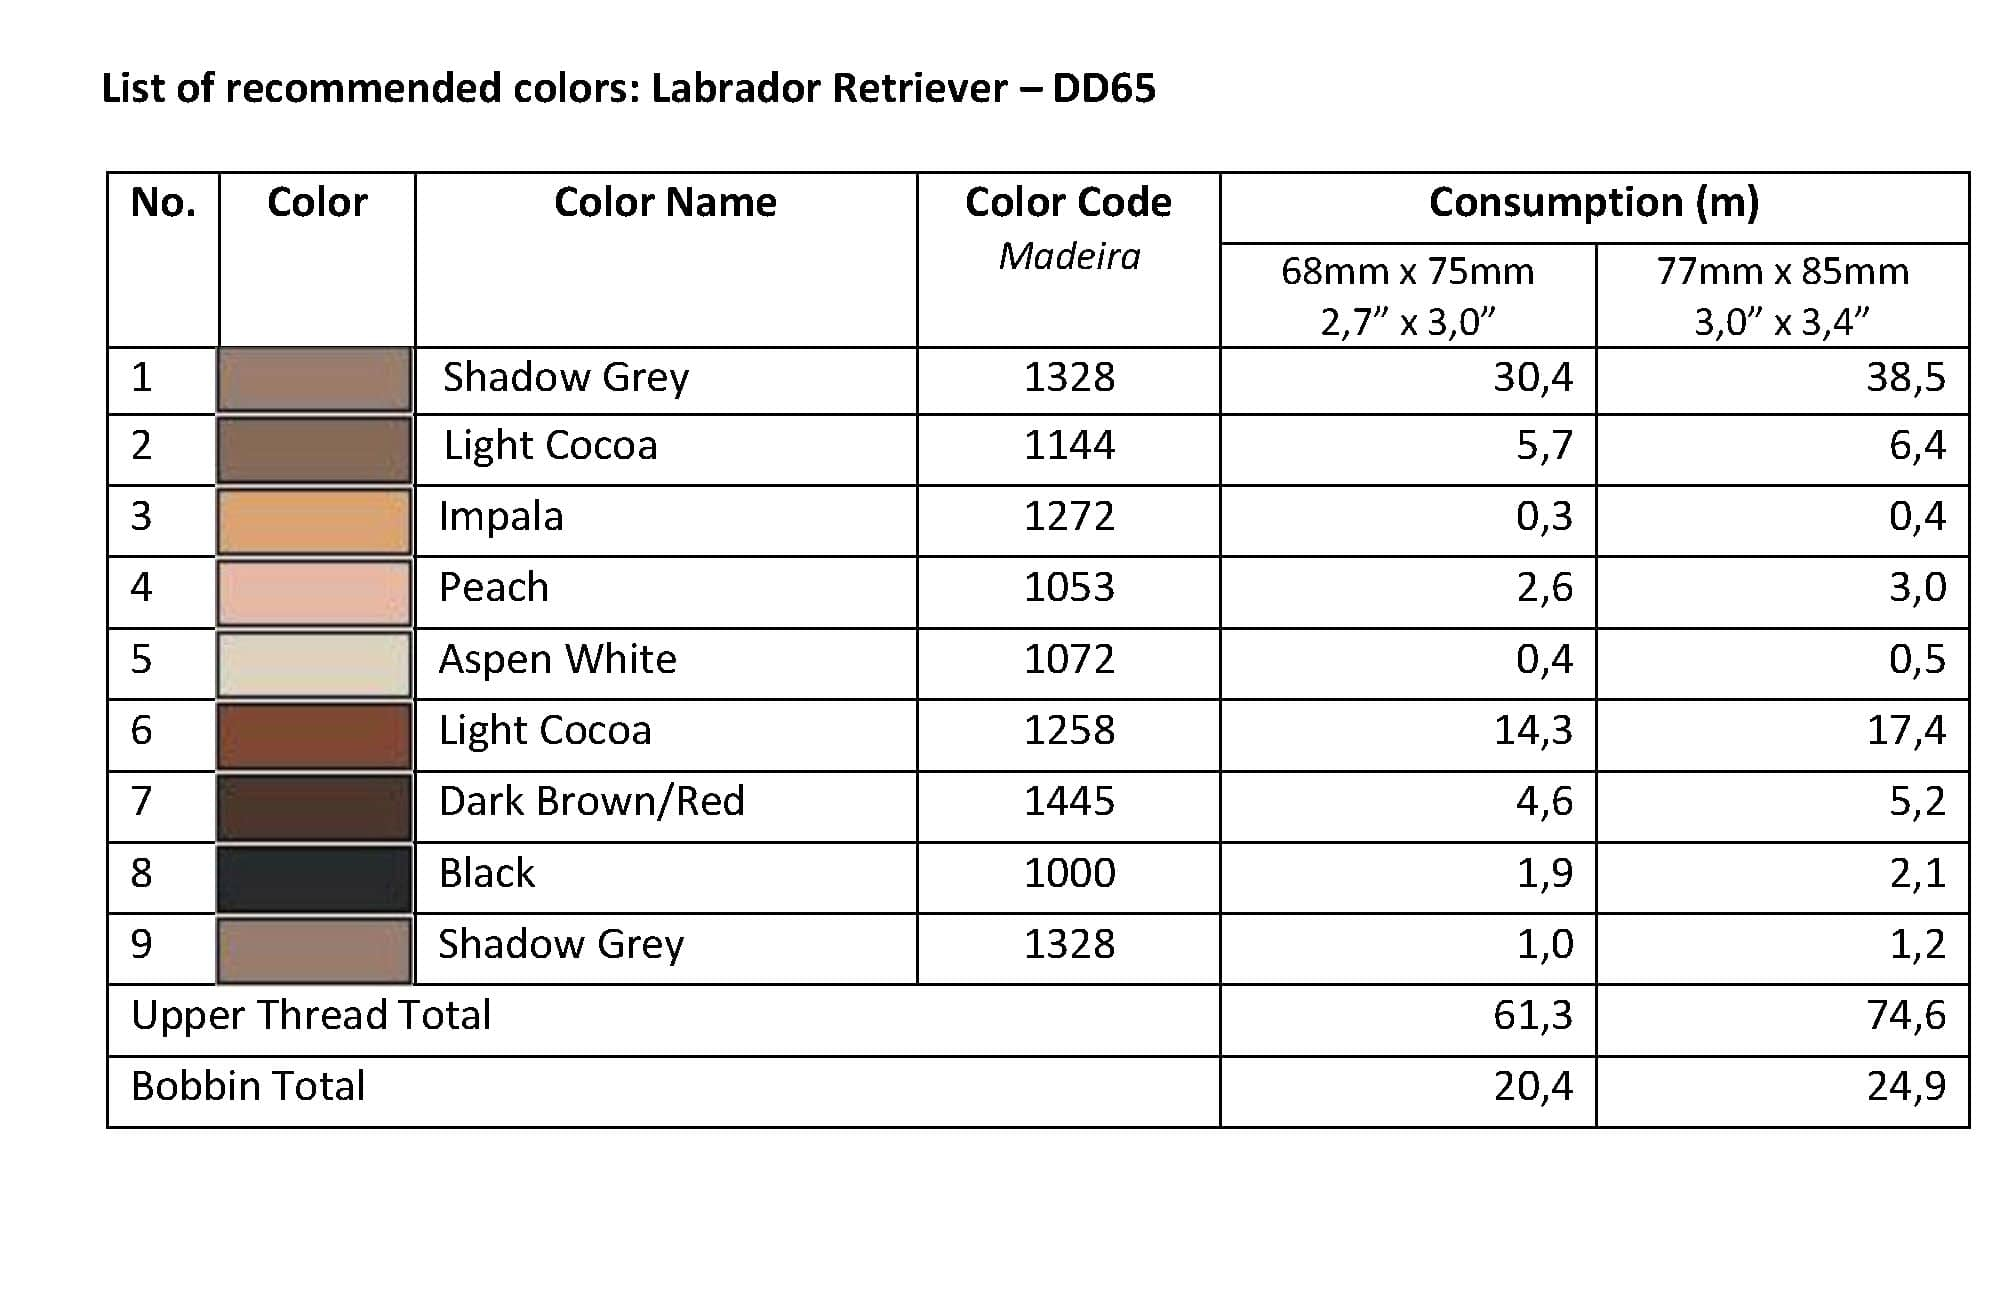 List of Recommended Colors -Labrador Retriever DD65